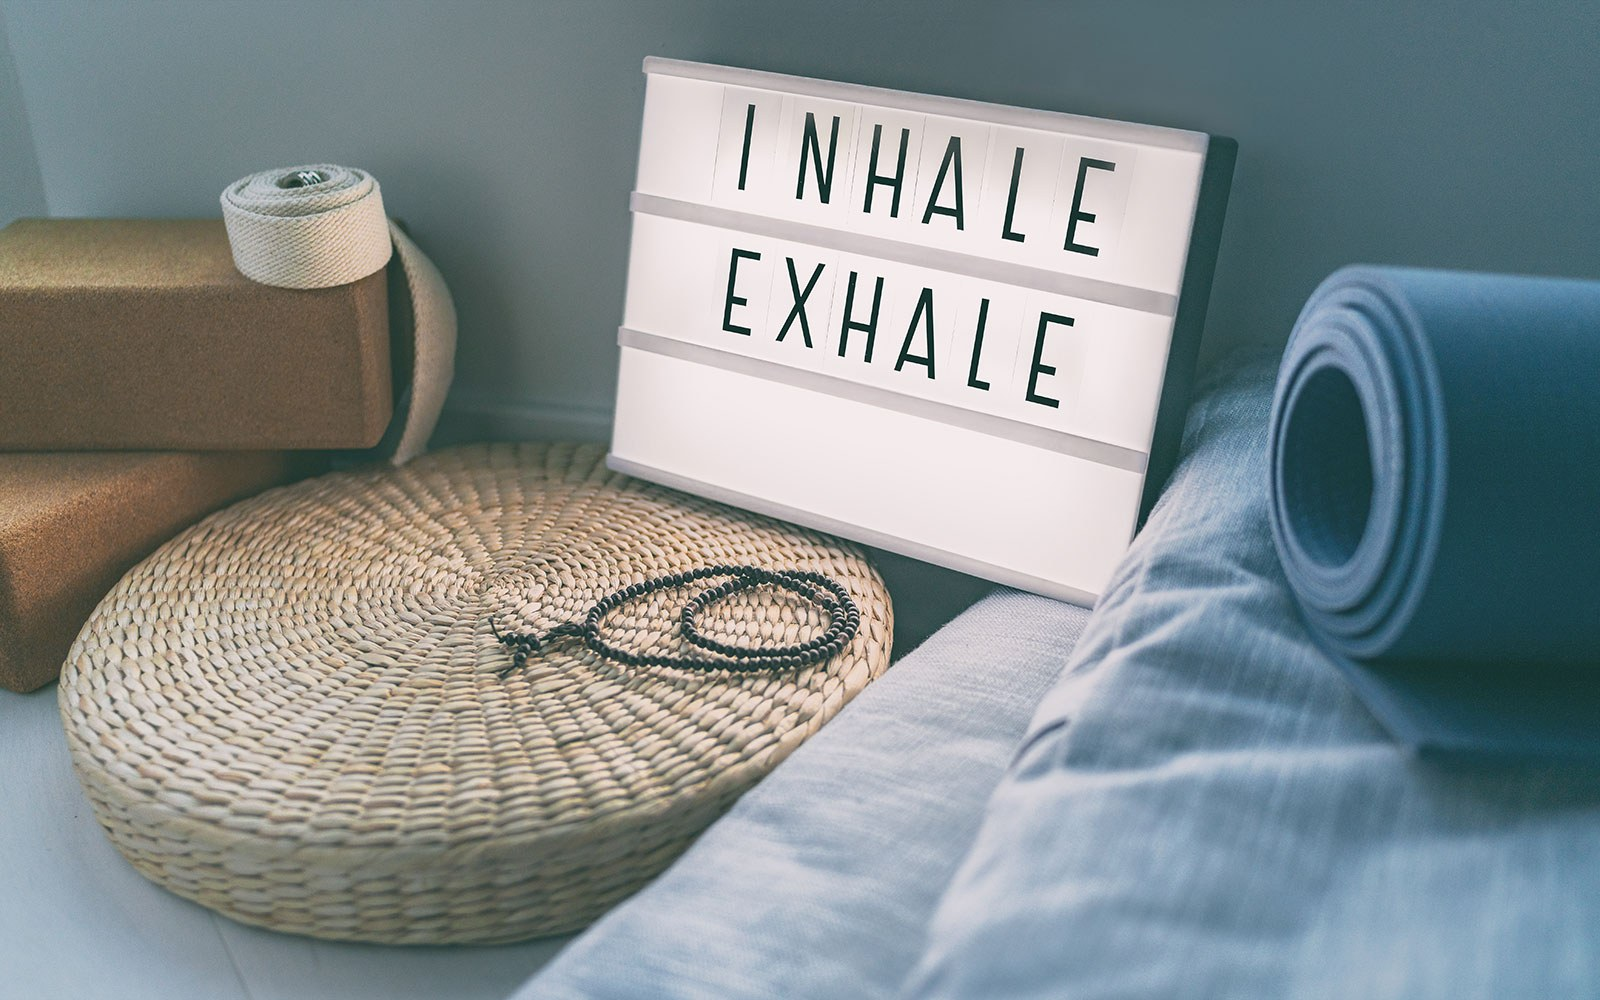 yoga equipment with a sign that says inhale exhale